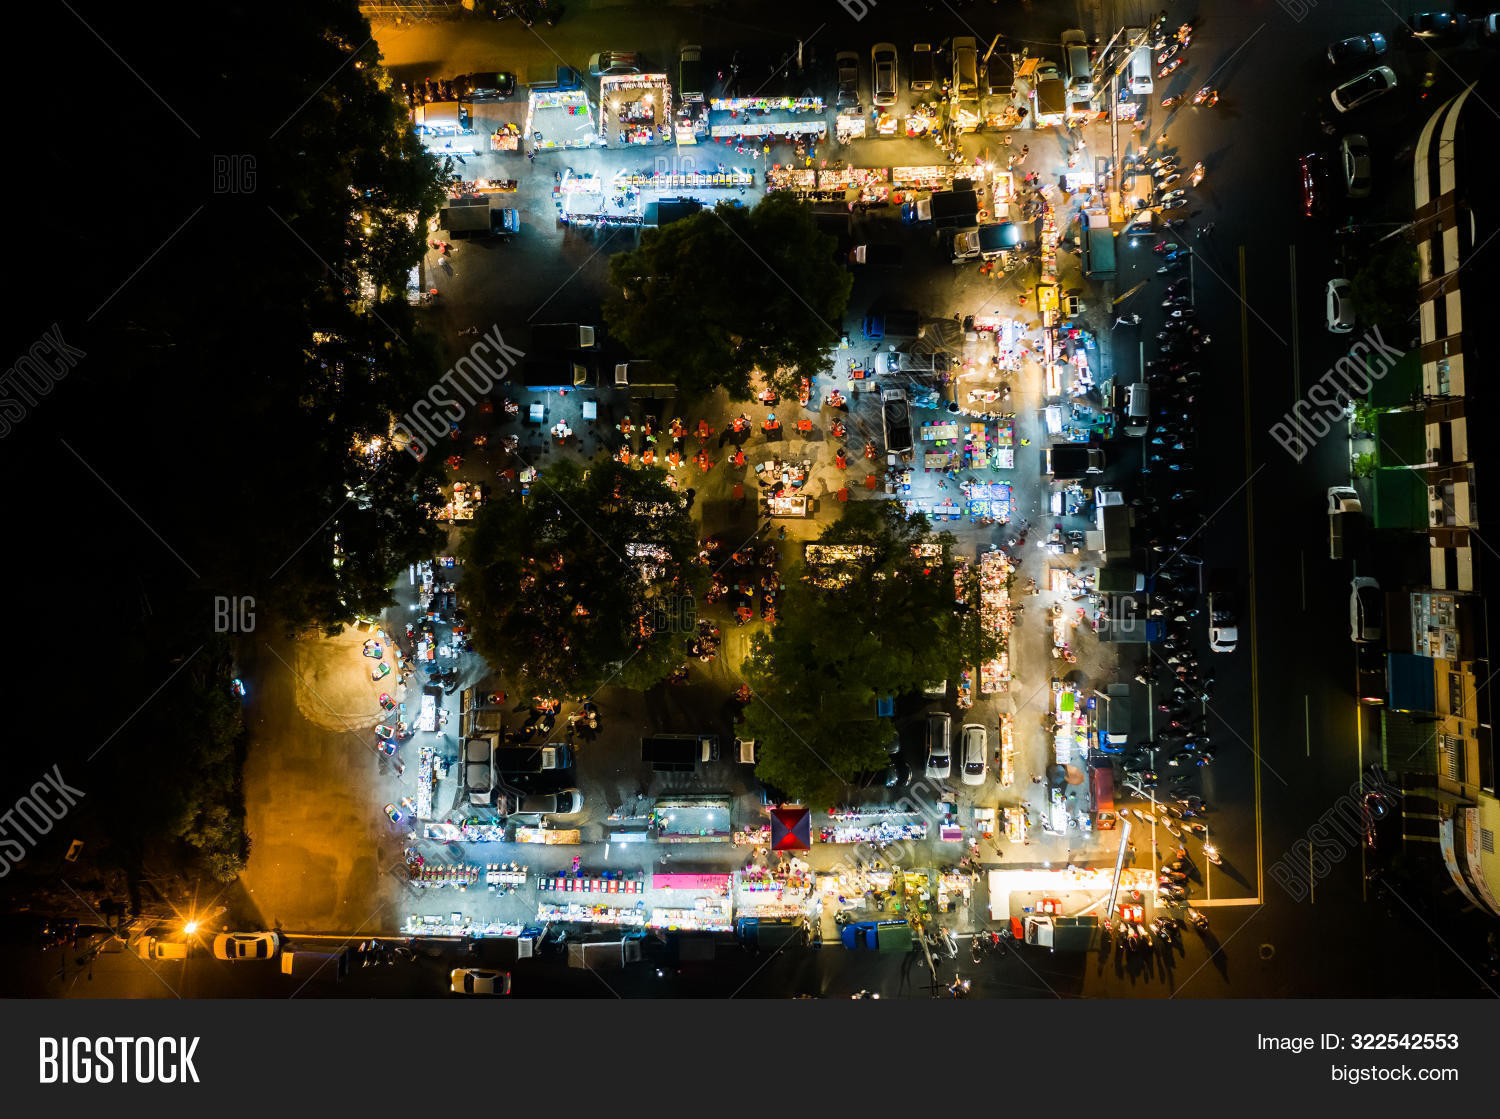 Nantou, Taiwan - September 11th, 2019: aerial view of Shuren night marketplace at Puli town, Nantou, Taiwan